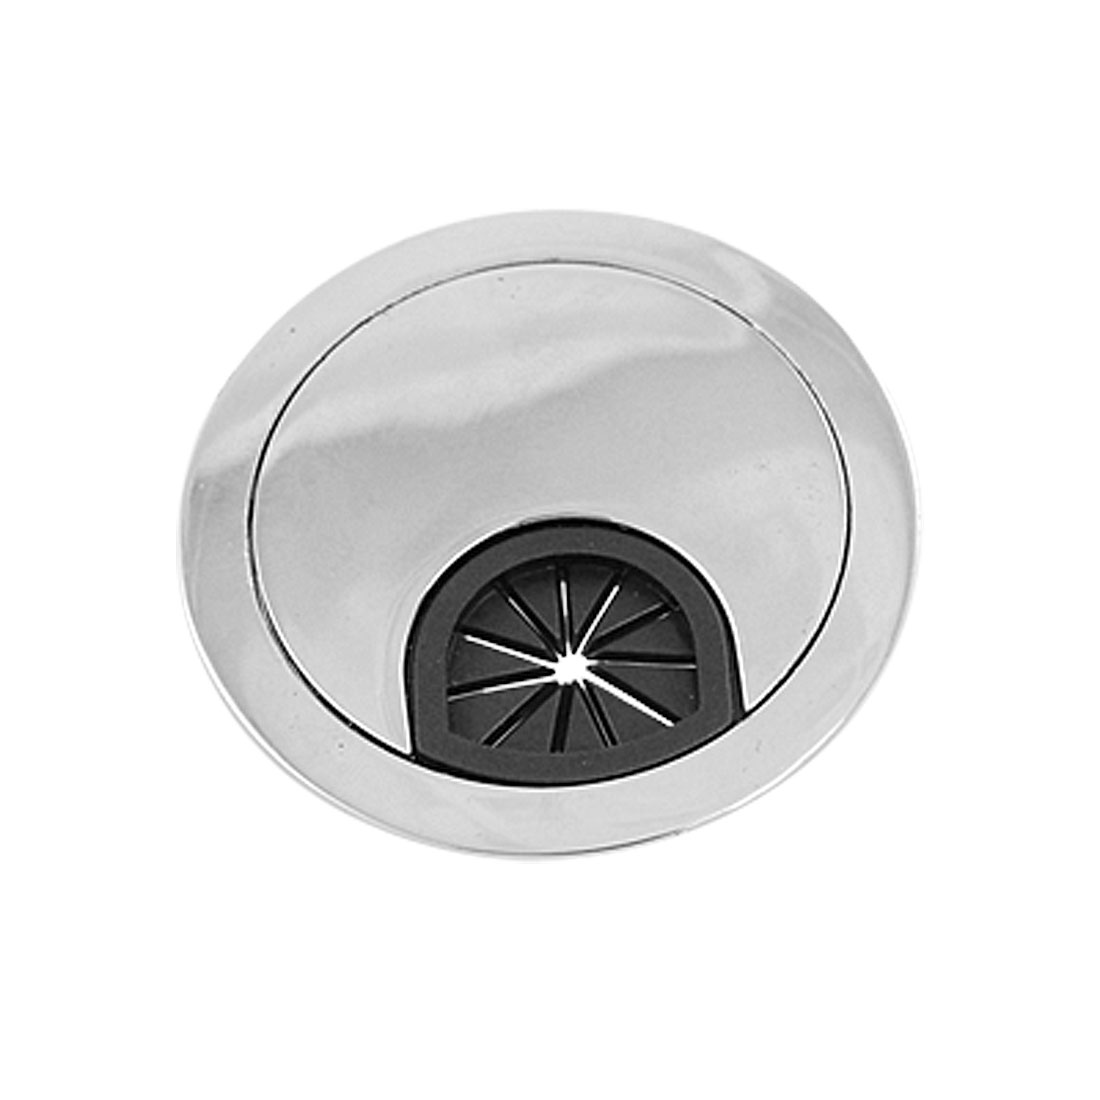 Round Plastic Hole Stainless Steel Cable Hole Cover Silver Tone